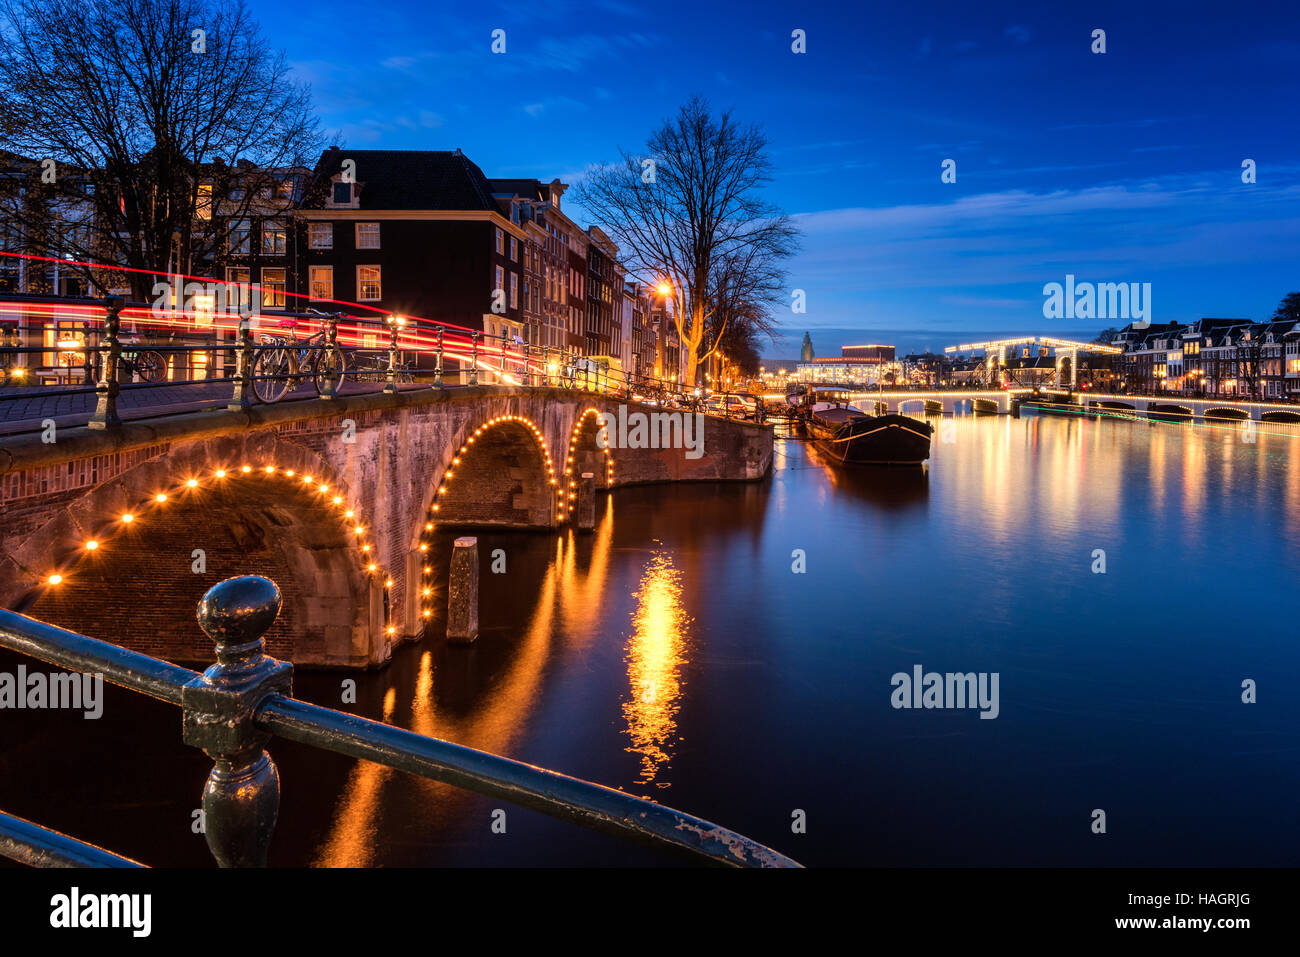 Amsterdam Canals and Bridges at Dusk - Stock Image